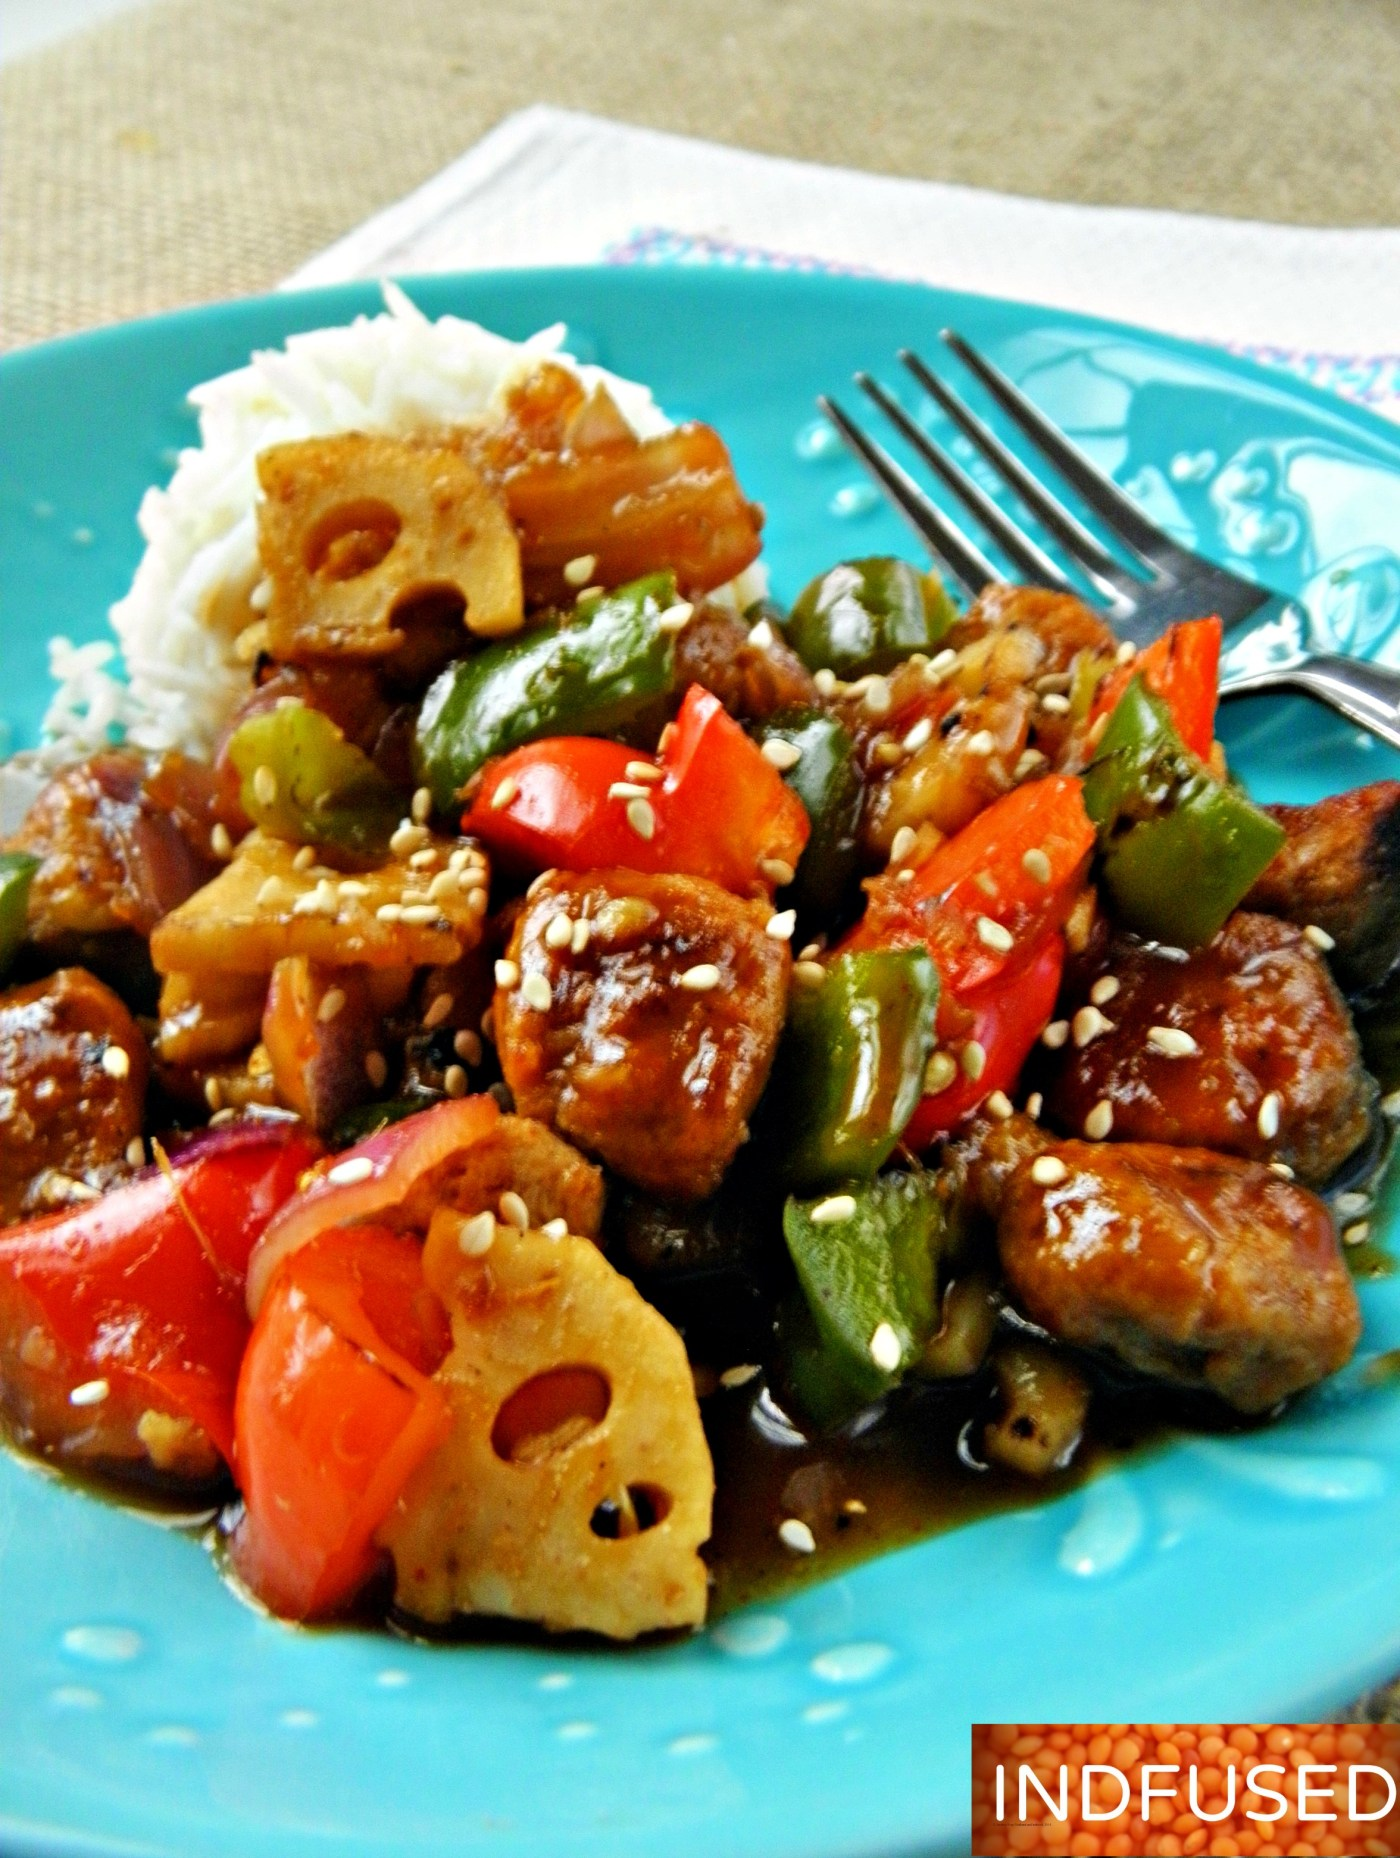 Popular # Indo Chinese,#recipe #vegetarian, soy nuggets and vegetables in a quick and easy spicy orange sauce